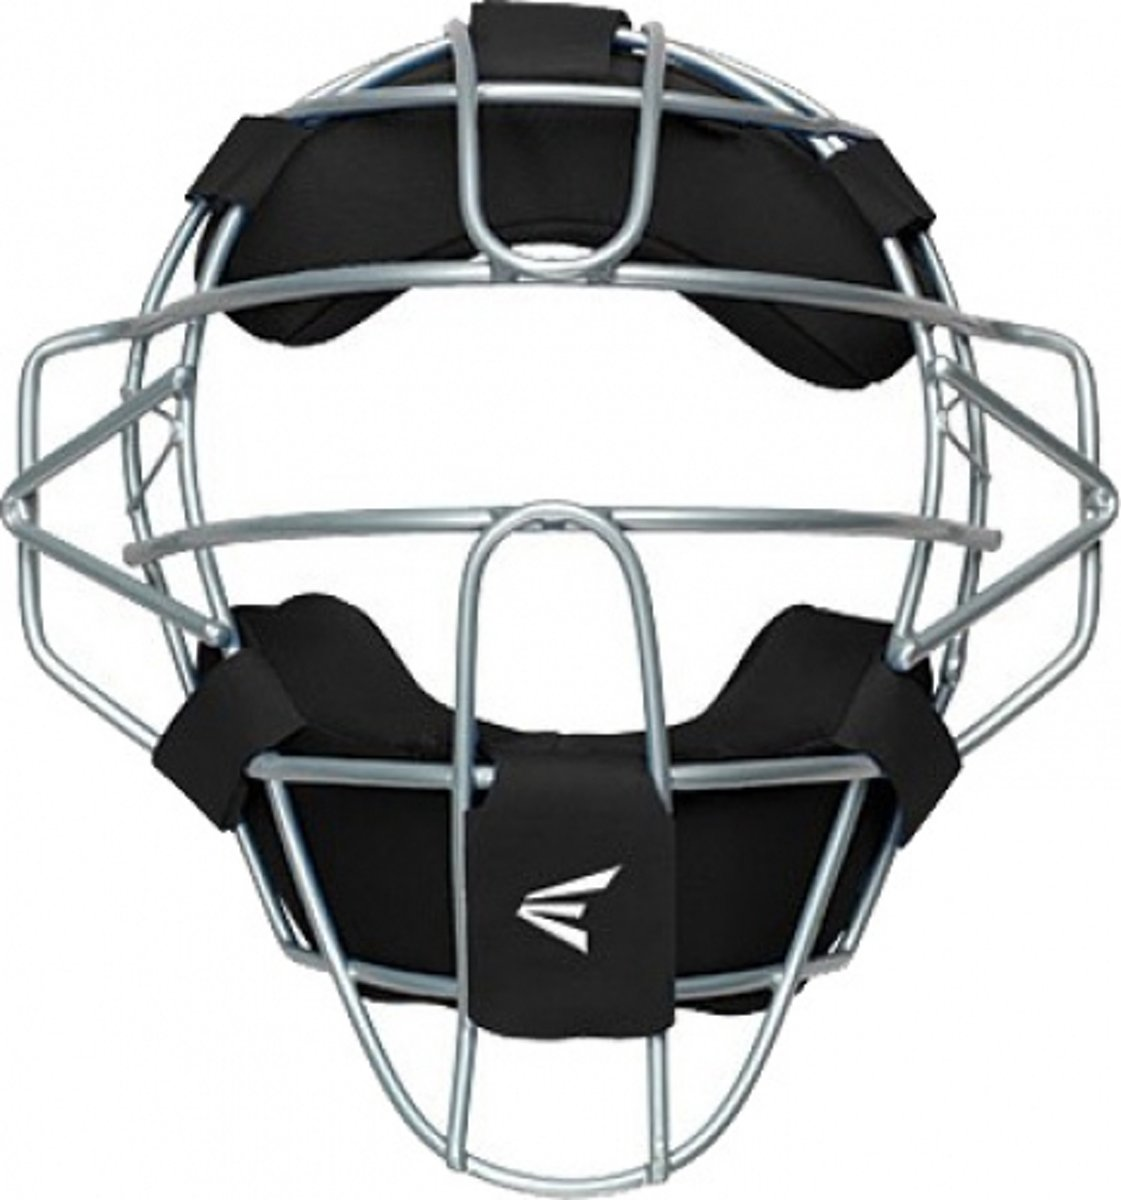 Easton Speed Elite Honkbal Catchermasker Zwart kopen